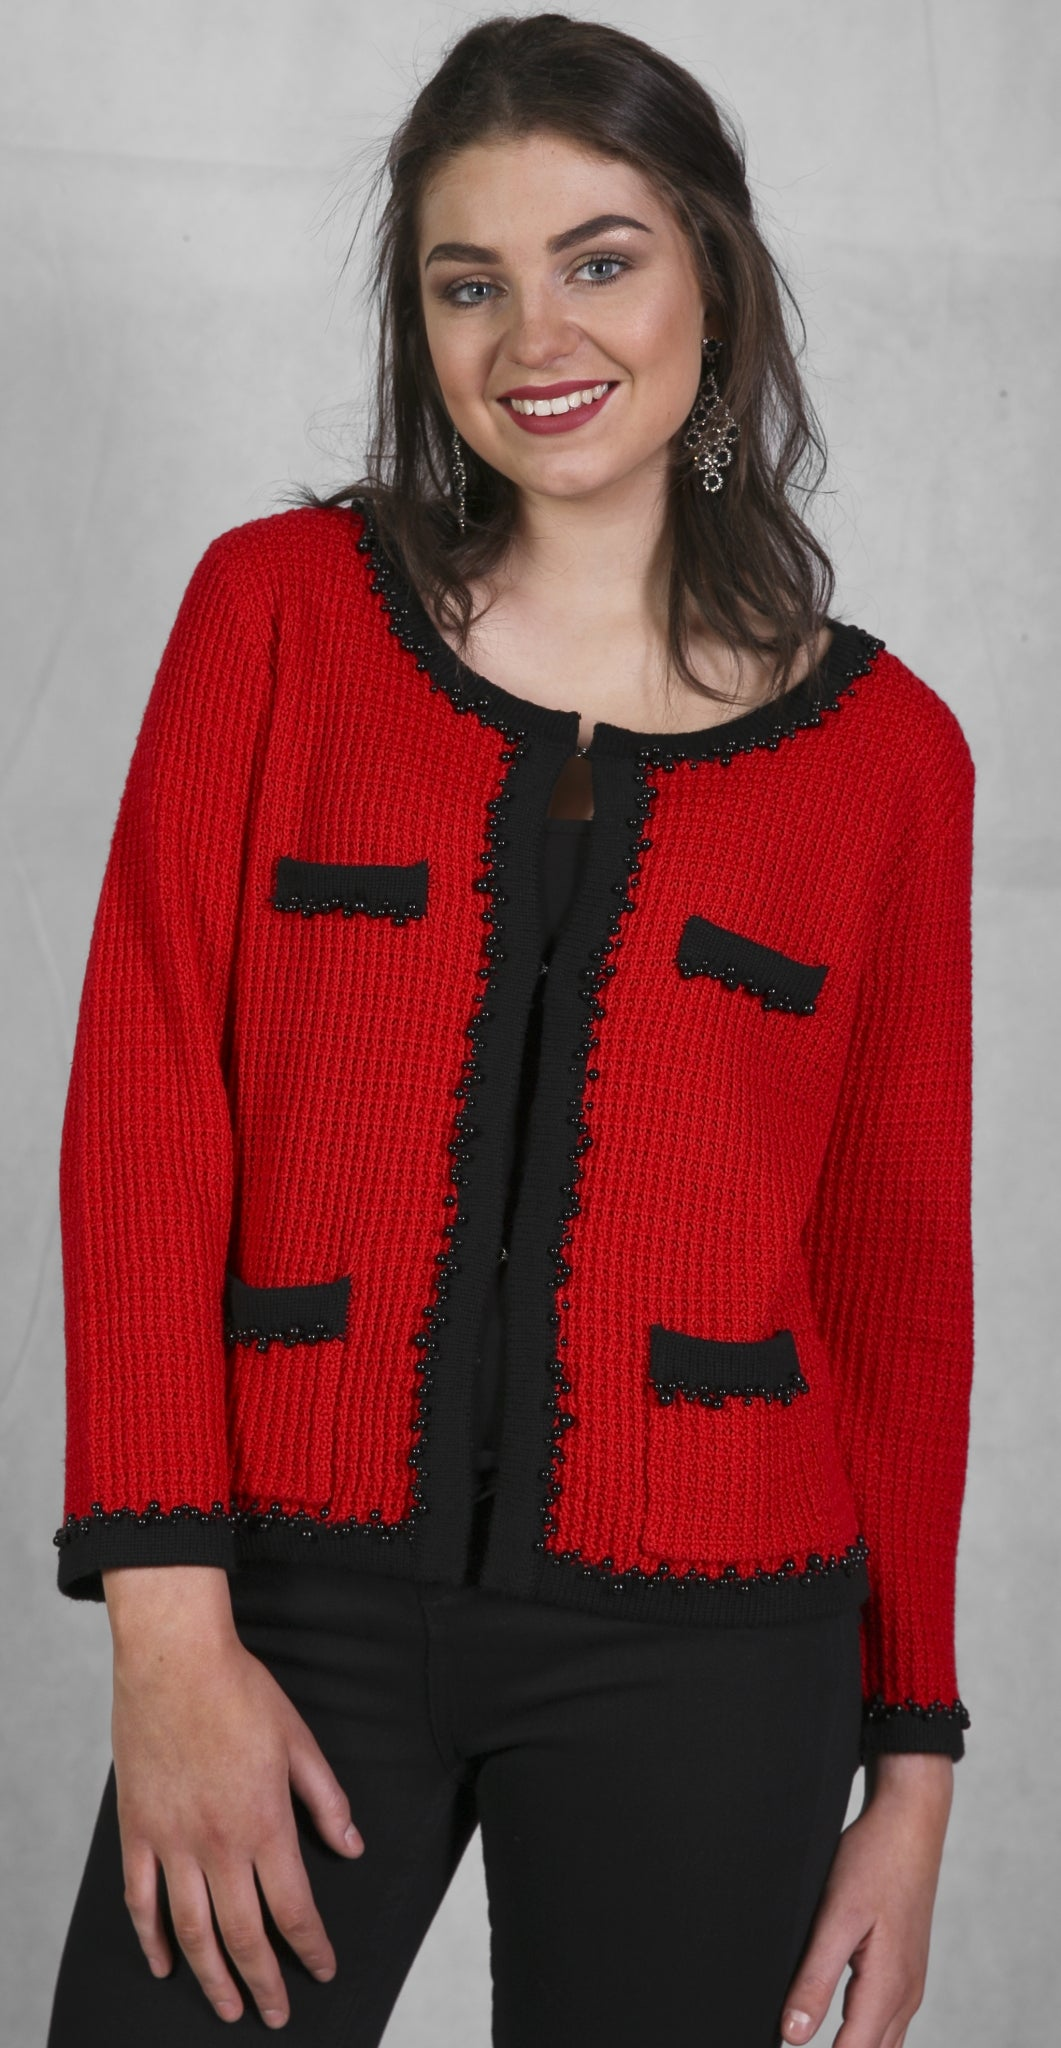 Amelie Red Knitted Jacket, Coco Chanel inspired